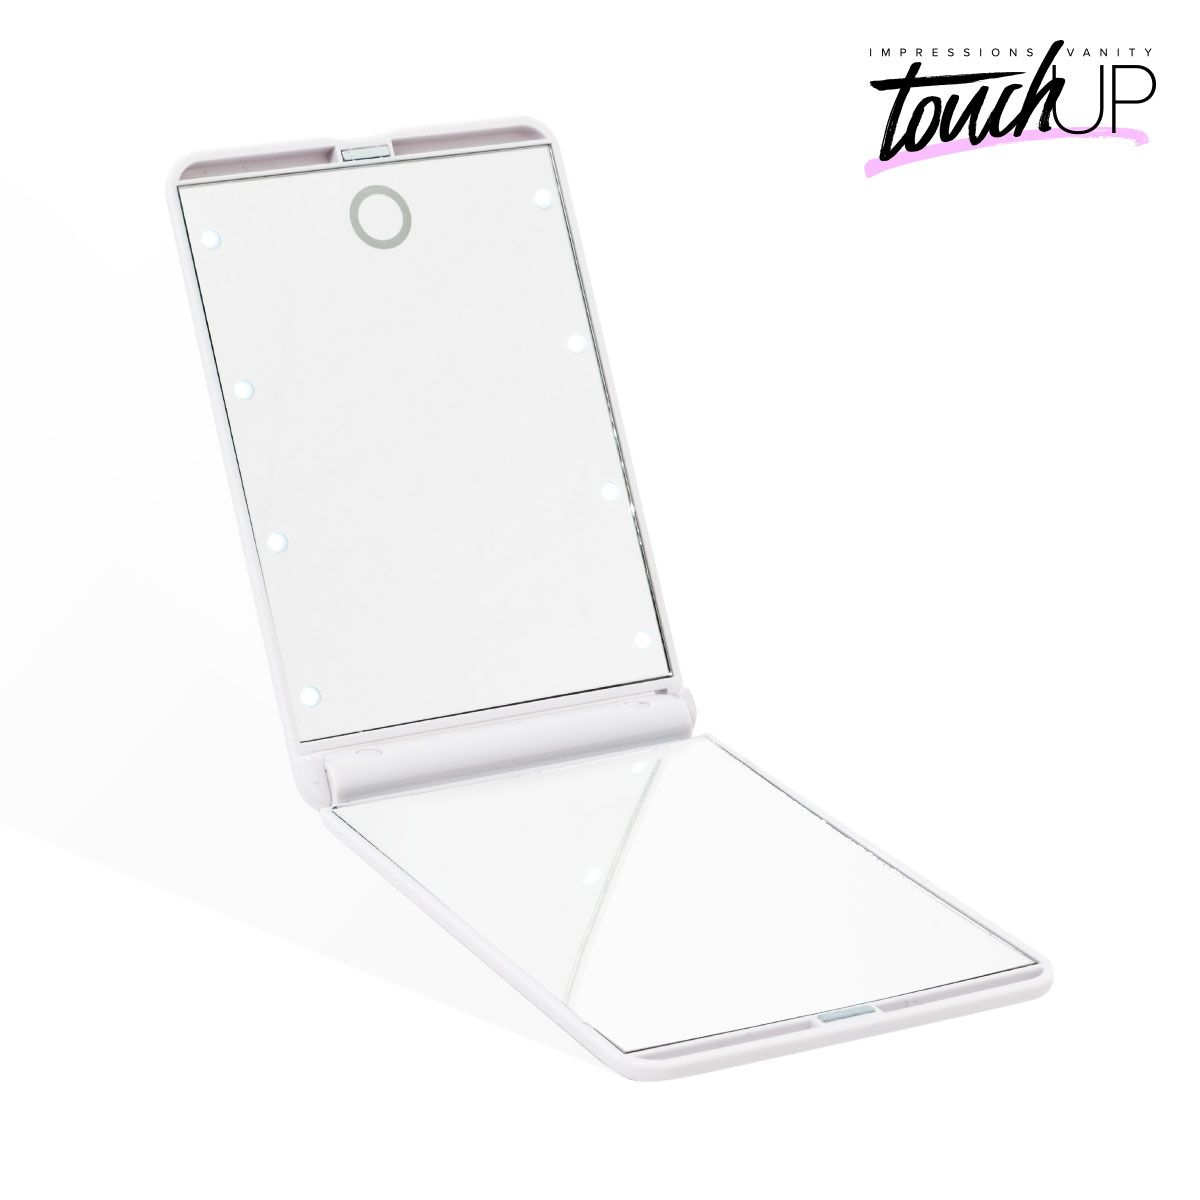 Illuminated Top Mirror With 8 Bright White Leds For